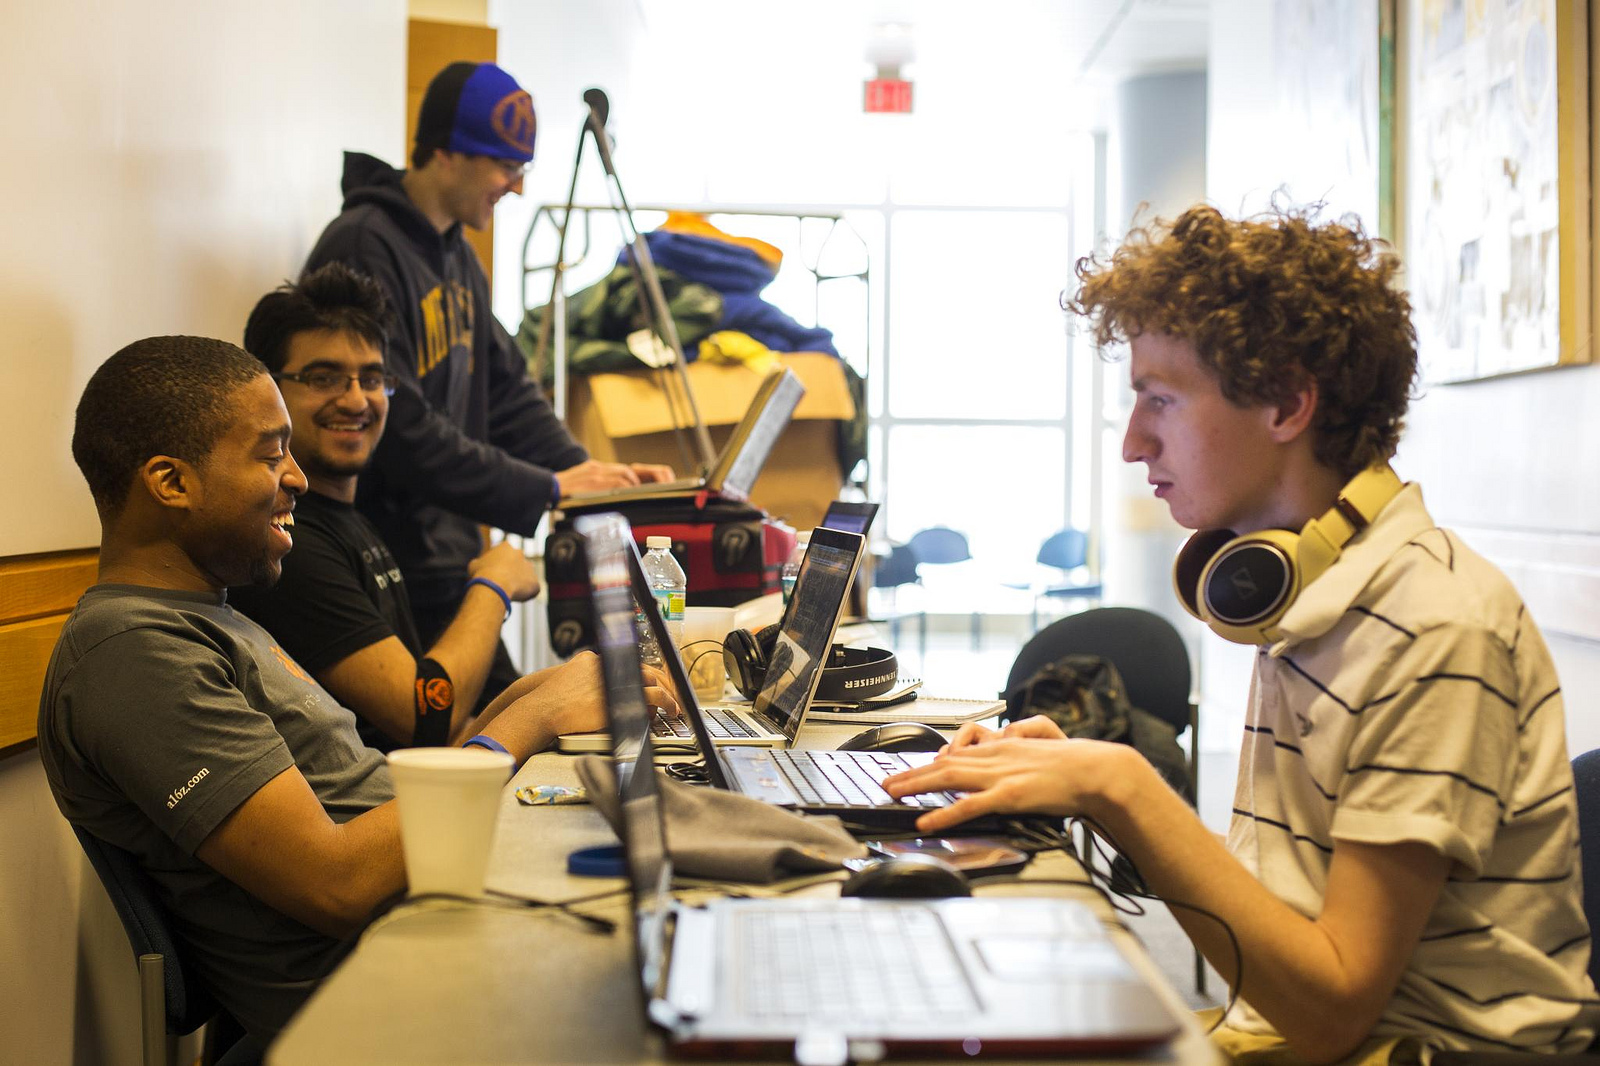 Alexander Biggs (right), of the University of Toronto, and Rashad Russel and Miker Angalz, of the University of Illinois-Urbana Champaign, work in a hallway in the Palmer Commons during the hackathon. Image Credit: Joseph Xu